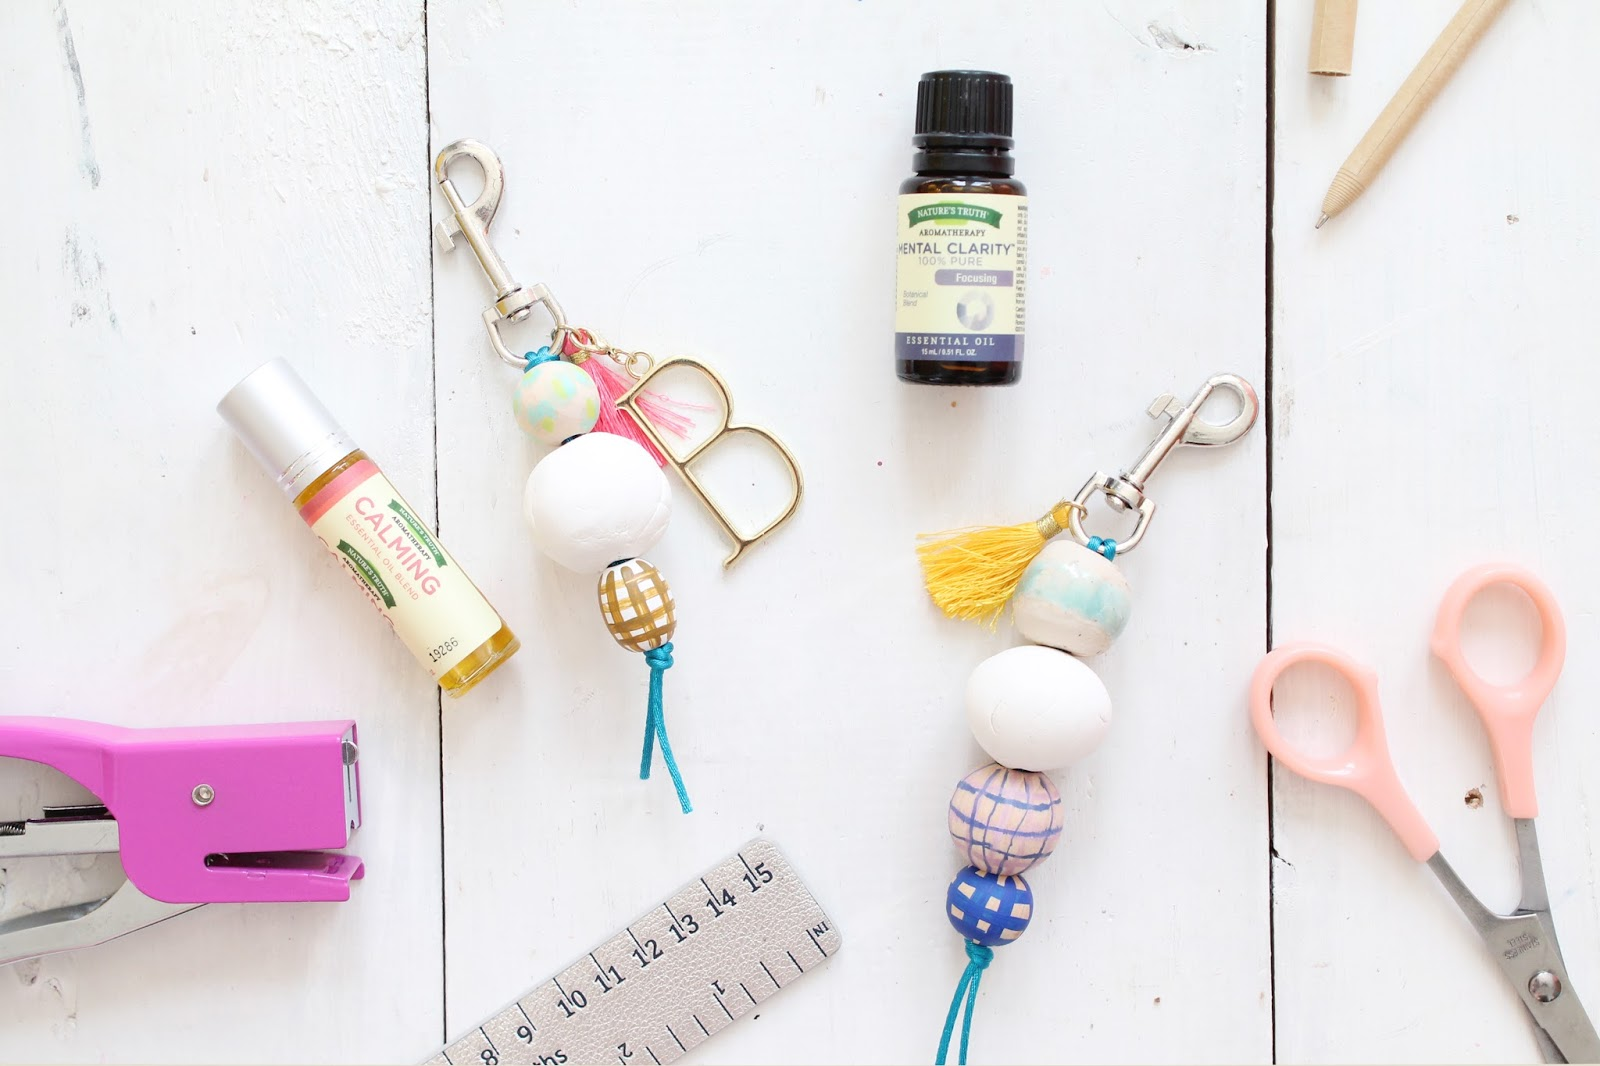 Make a Diffuser Keychain for Essential Oils